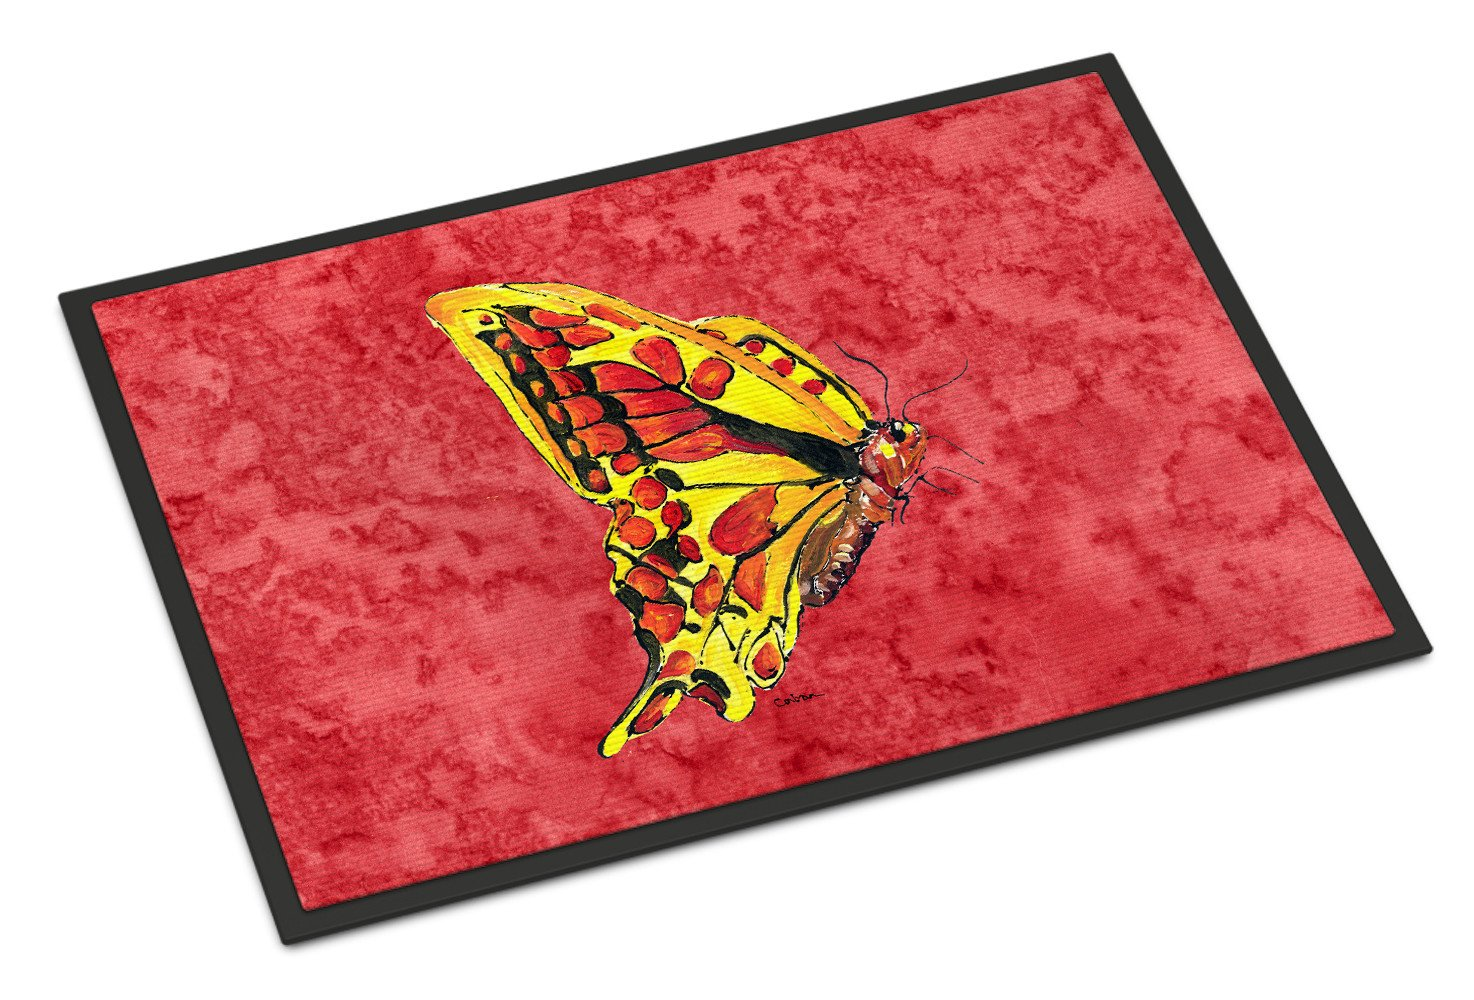 Butterfly on Red Indoor or Outdoor Mat 18x27 Doormat - the-store.com